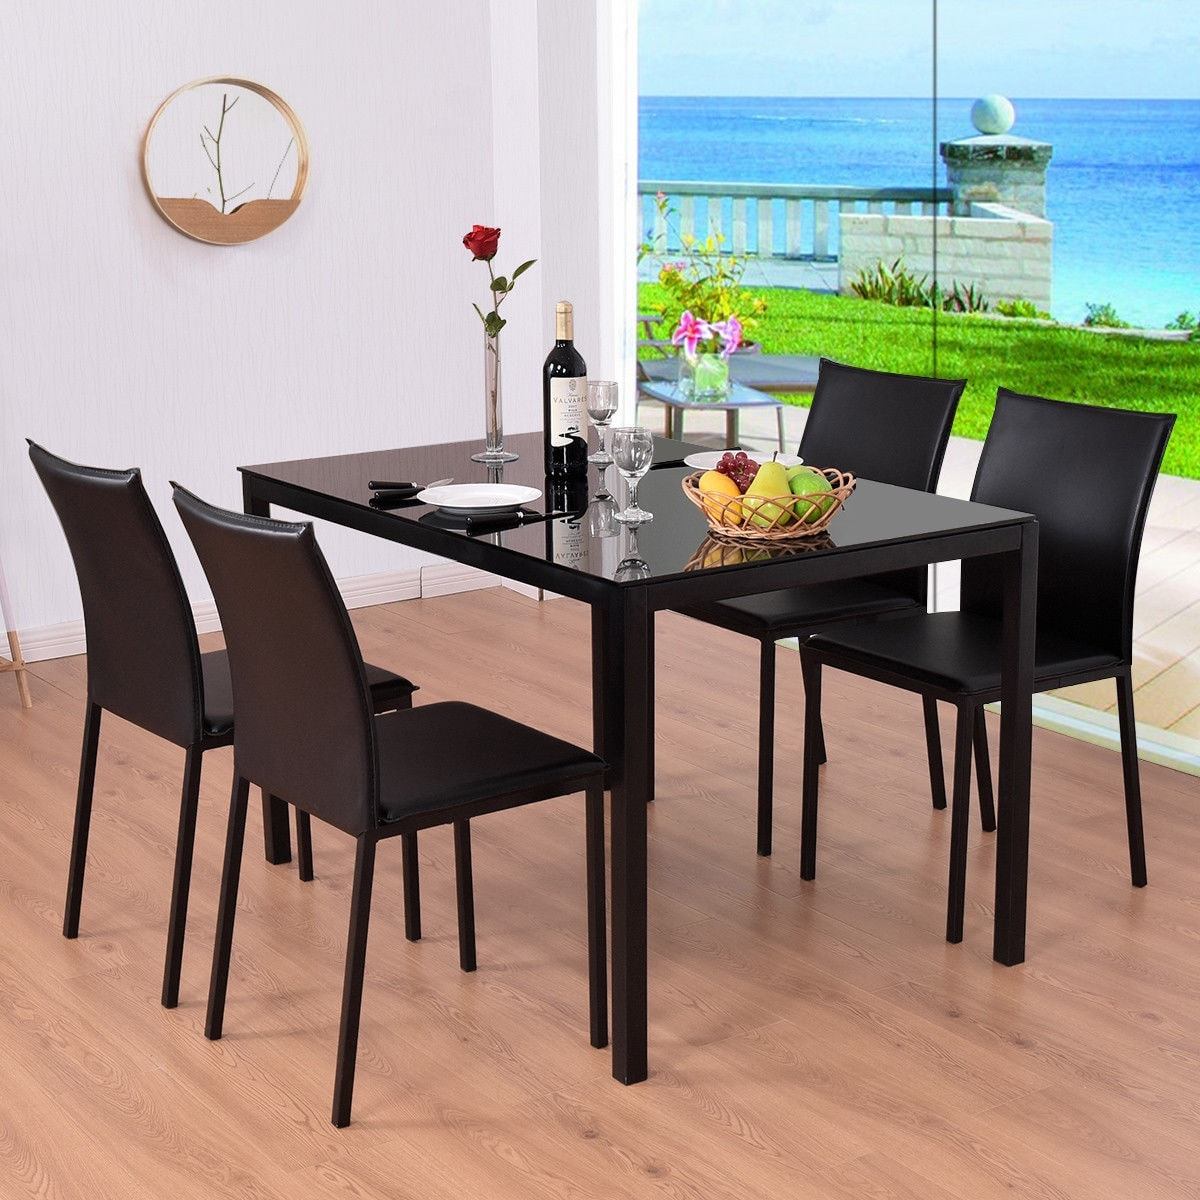 5 Piece Dining Table Set 4 Chairs PU Glass Top Furniture Kitchen Breakfast  Room